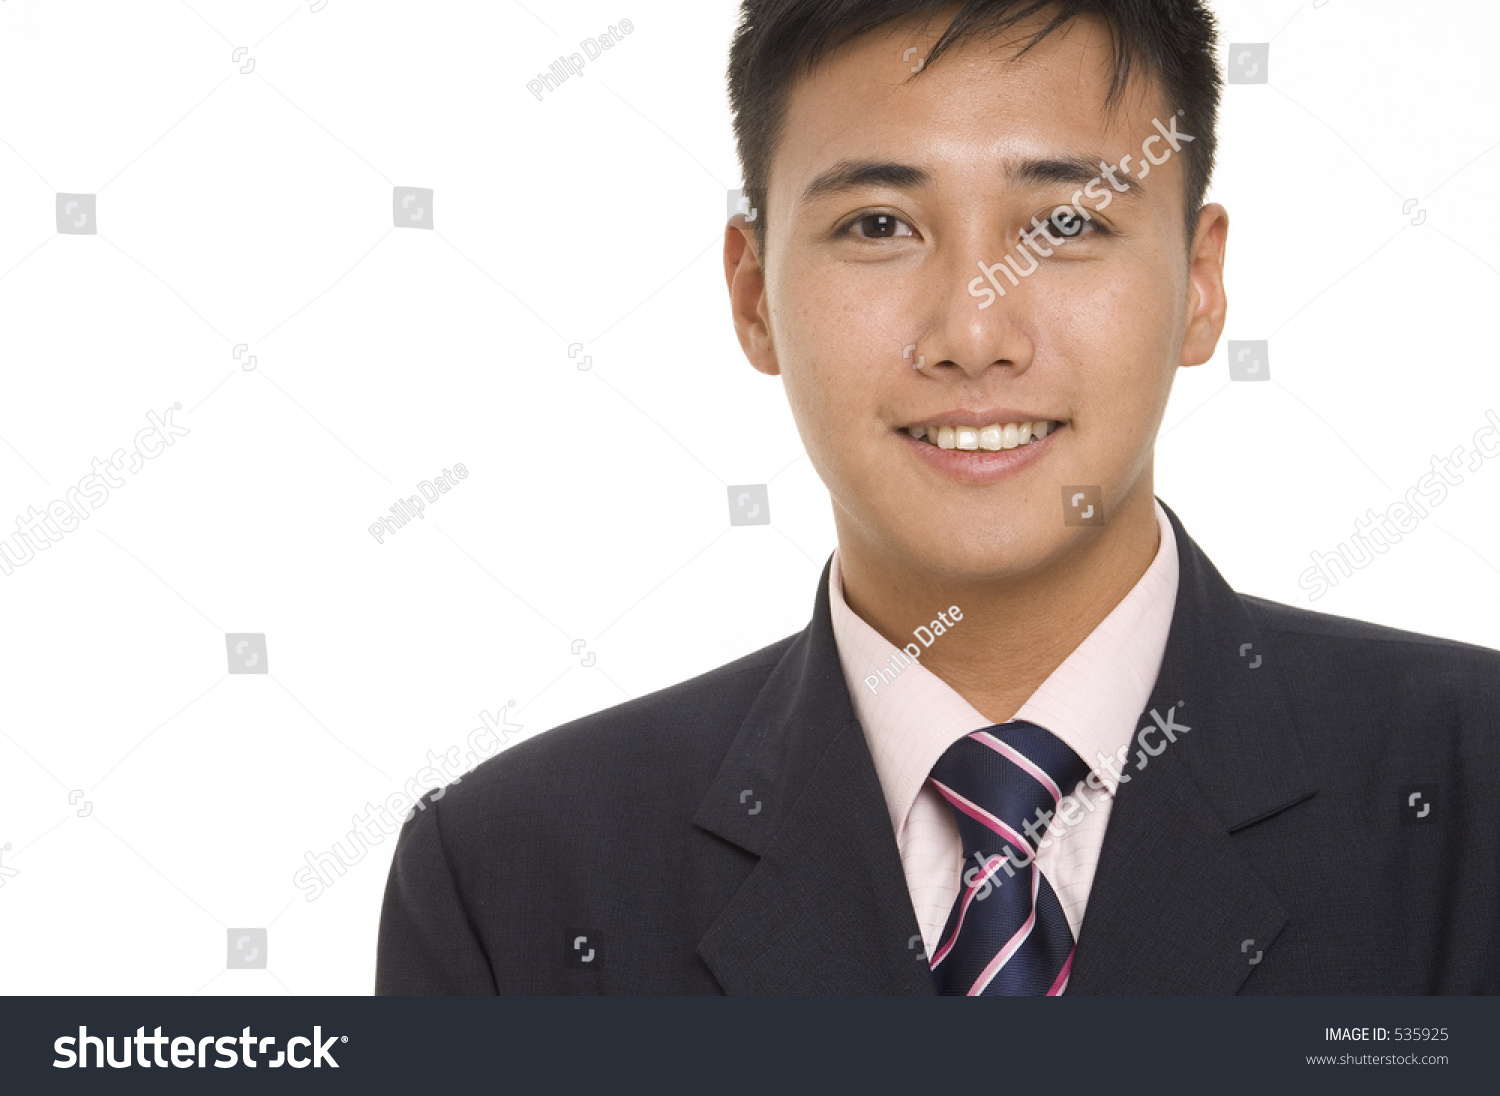 sharps asian single men As i mentioned before, a stigma exists toward asian women who date western men, which also casts interracial dating in a poor light they are condemned as being social climbers.